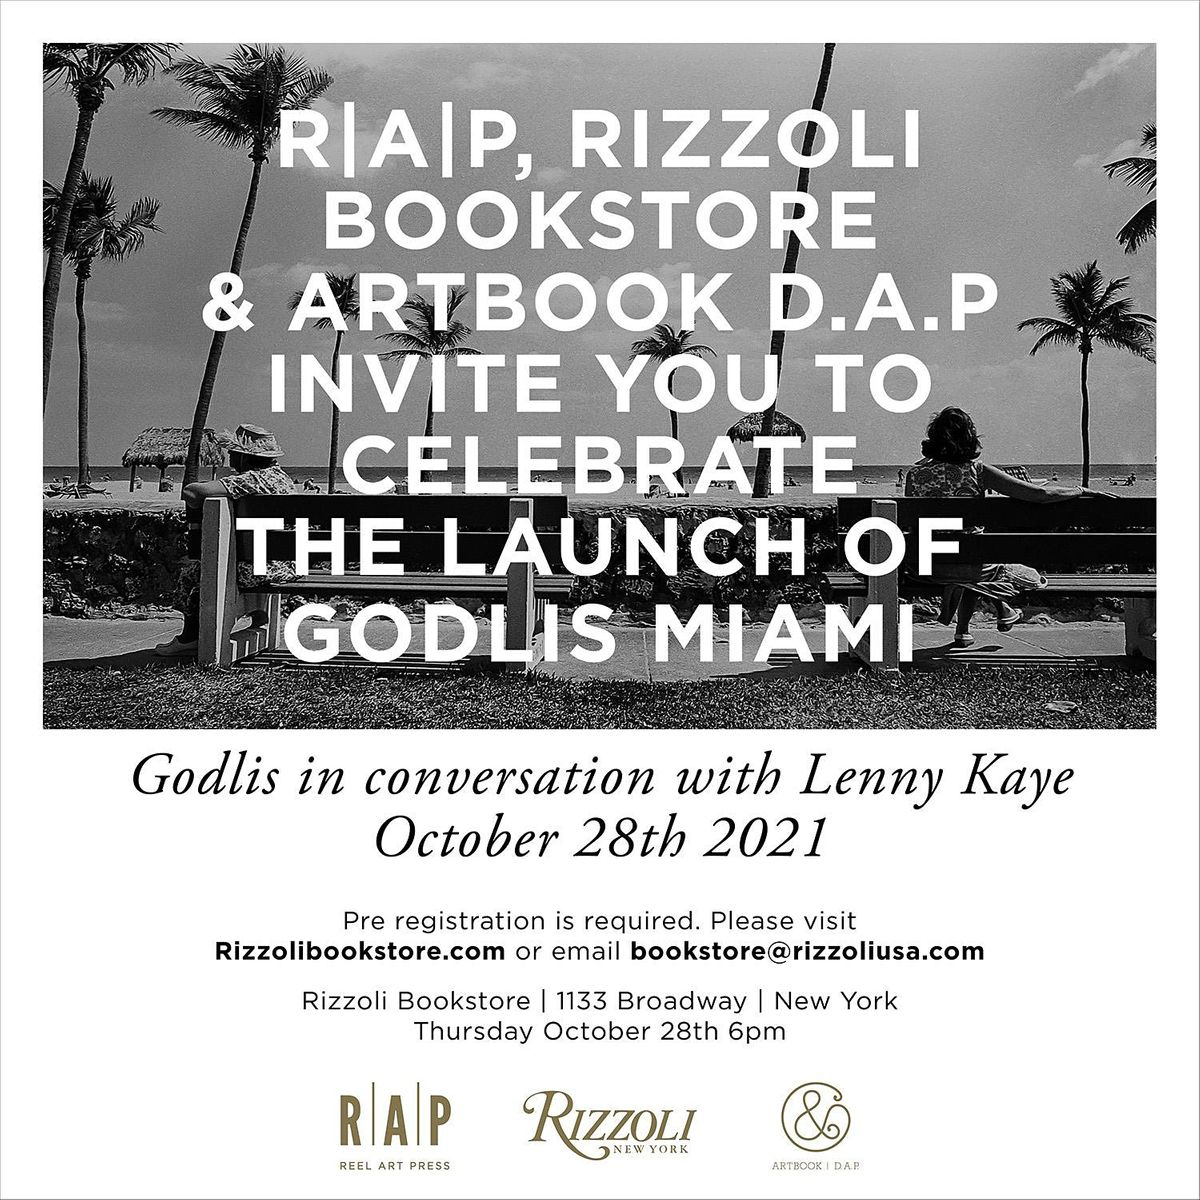 GODLIS MIAMI BY DAVID GODLIS - IN PERSON EVENT, 28 October | Event in New York | AllEvents.in